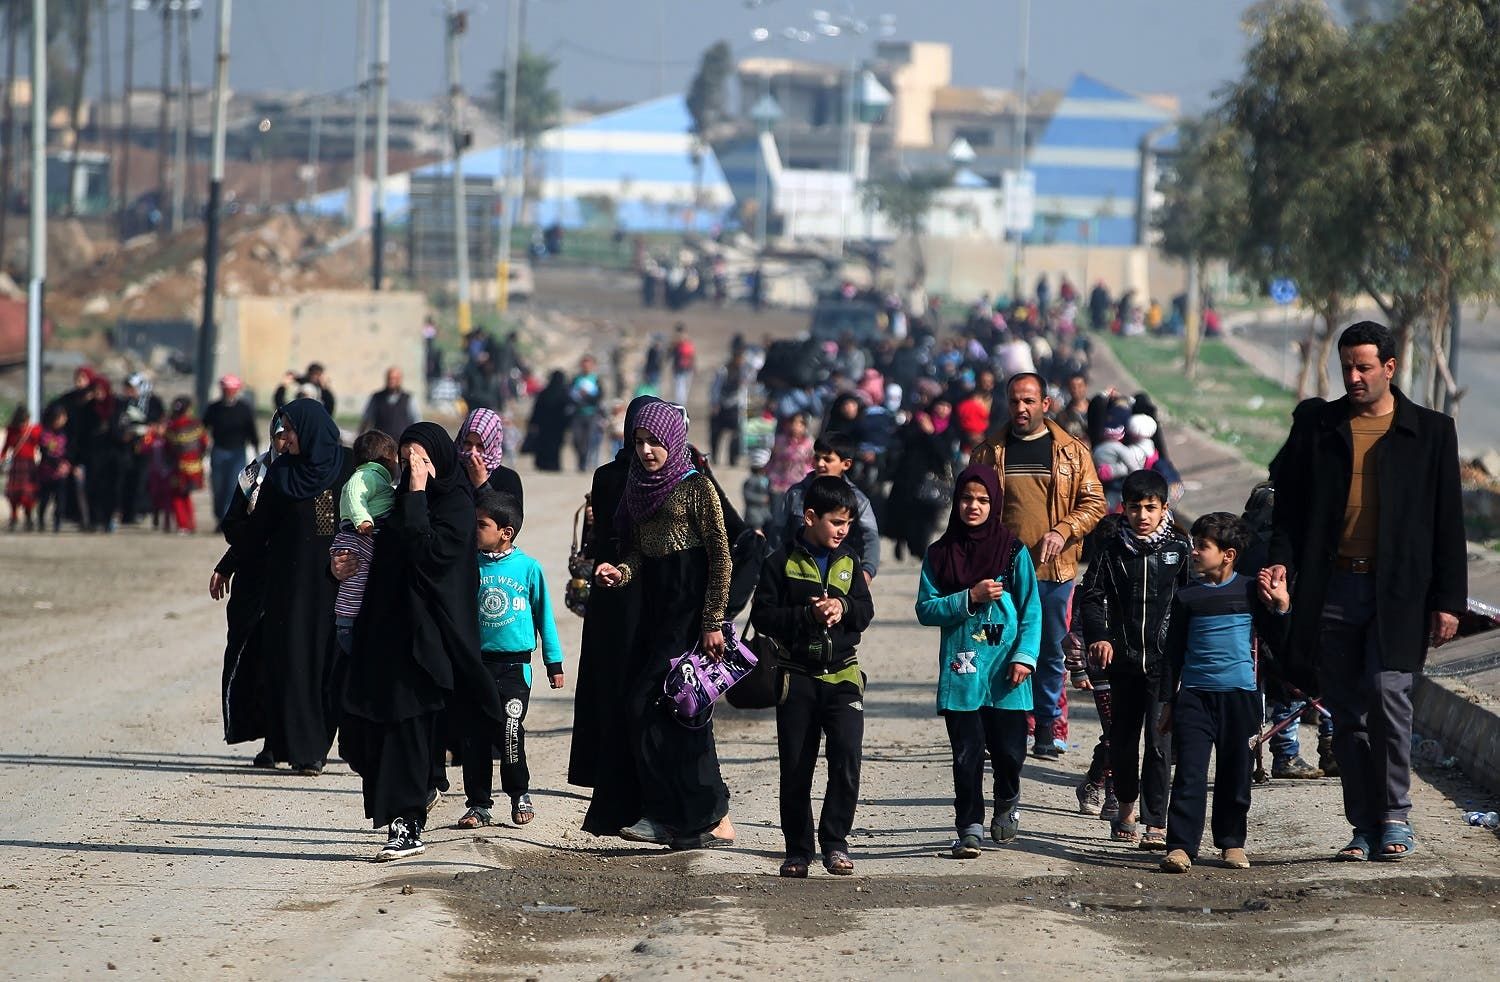 Displaced residents from Mosul's al-Nasser neighbourhood evacuate the area on March 14, 2017 as Iraqi forces continue to advance in the embattled city combatting Islamic State (IS) group jihadists. (AFP)